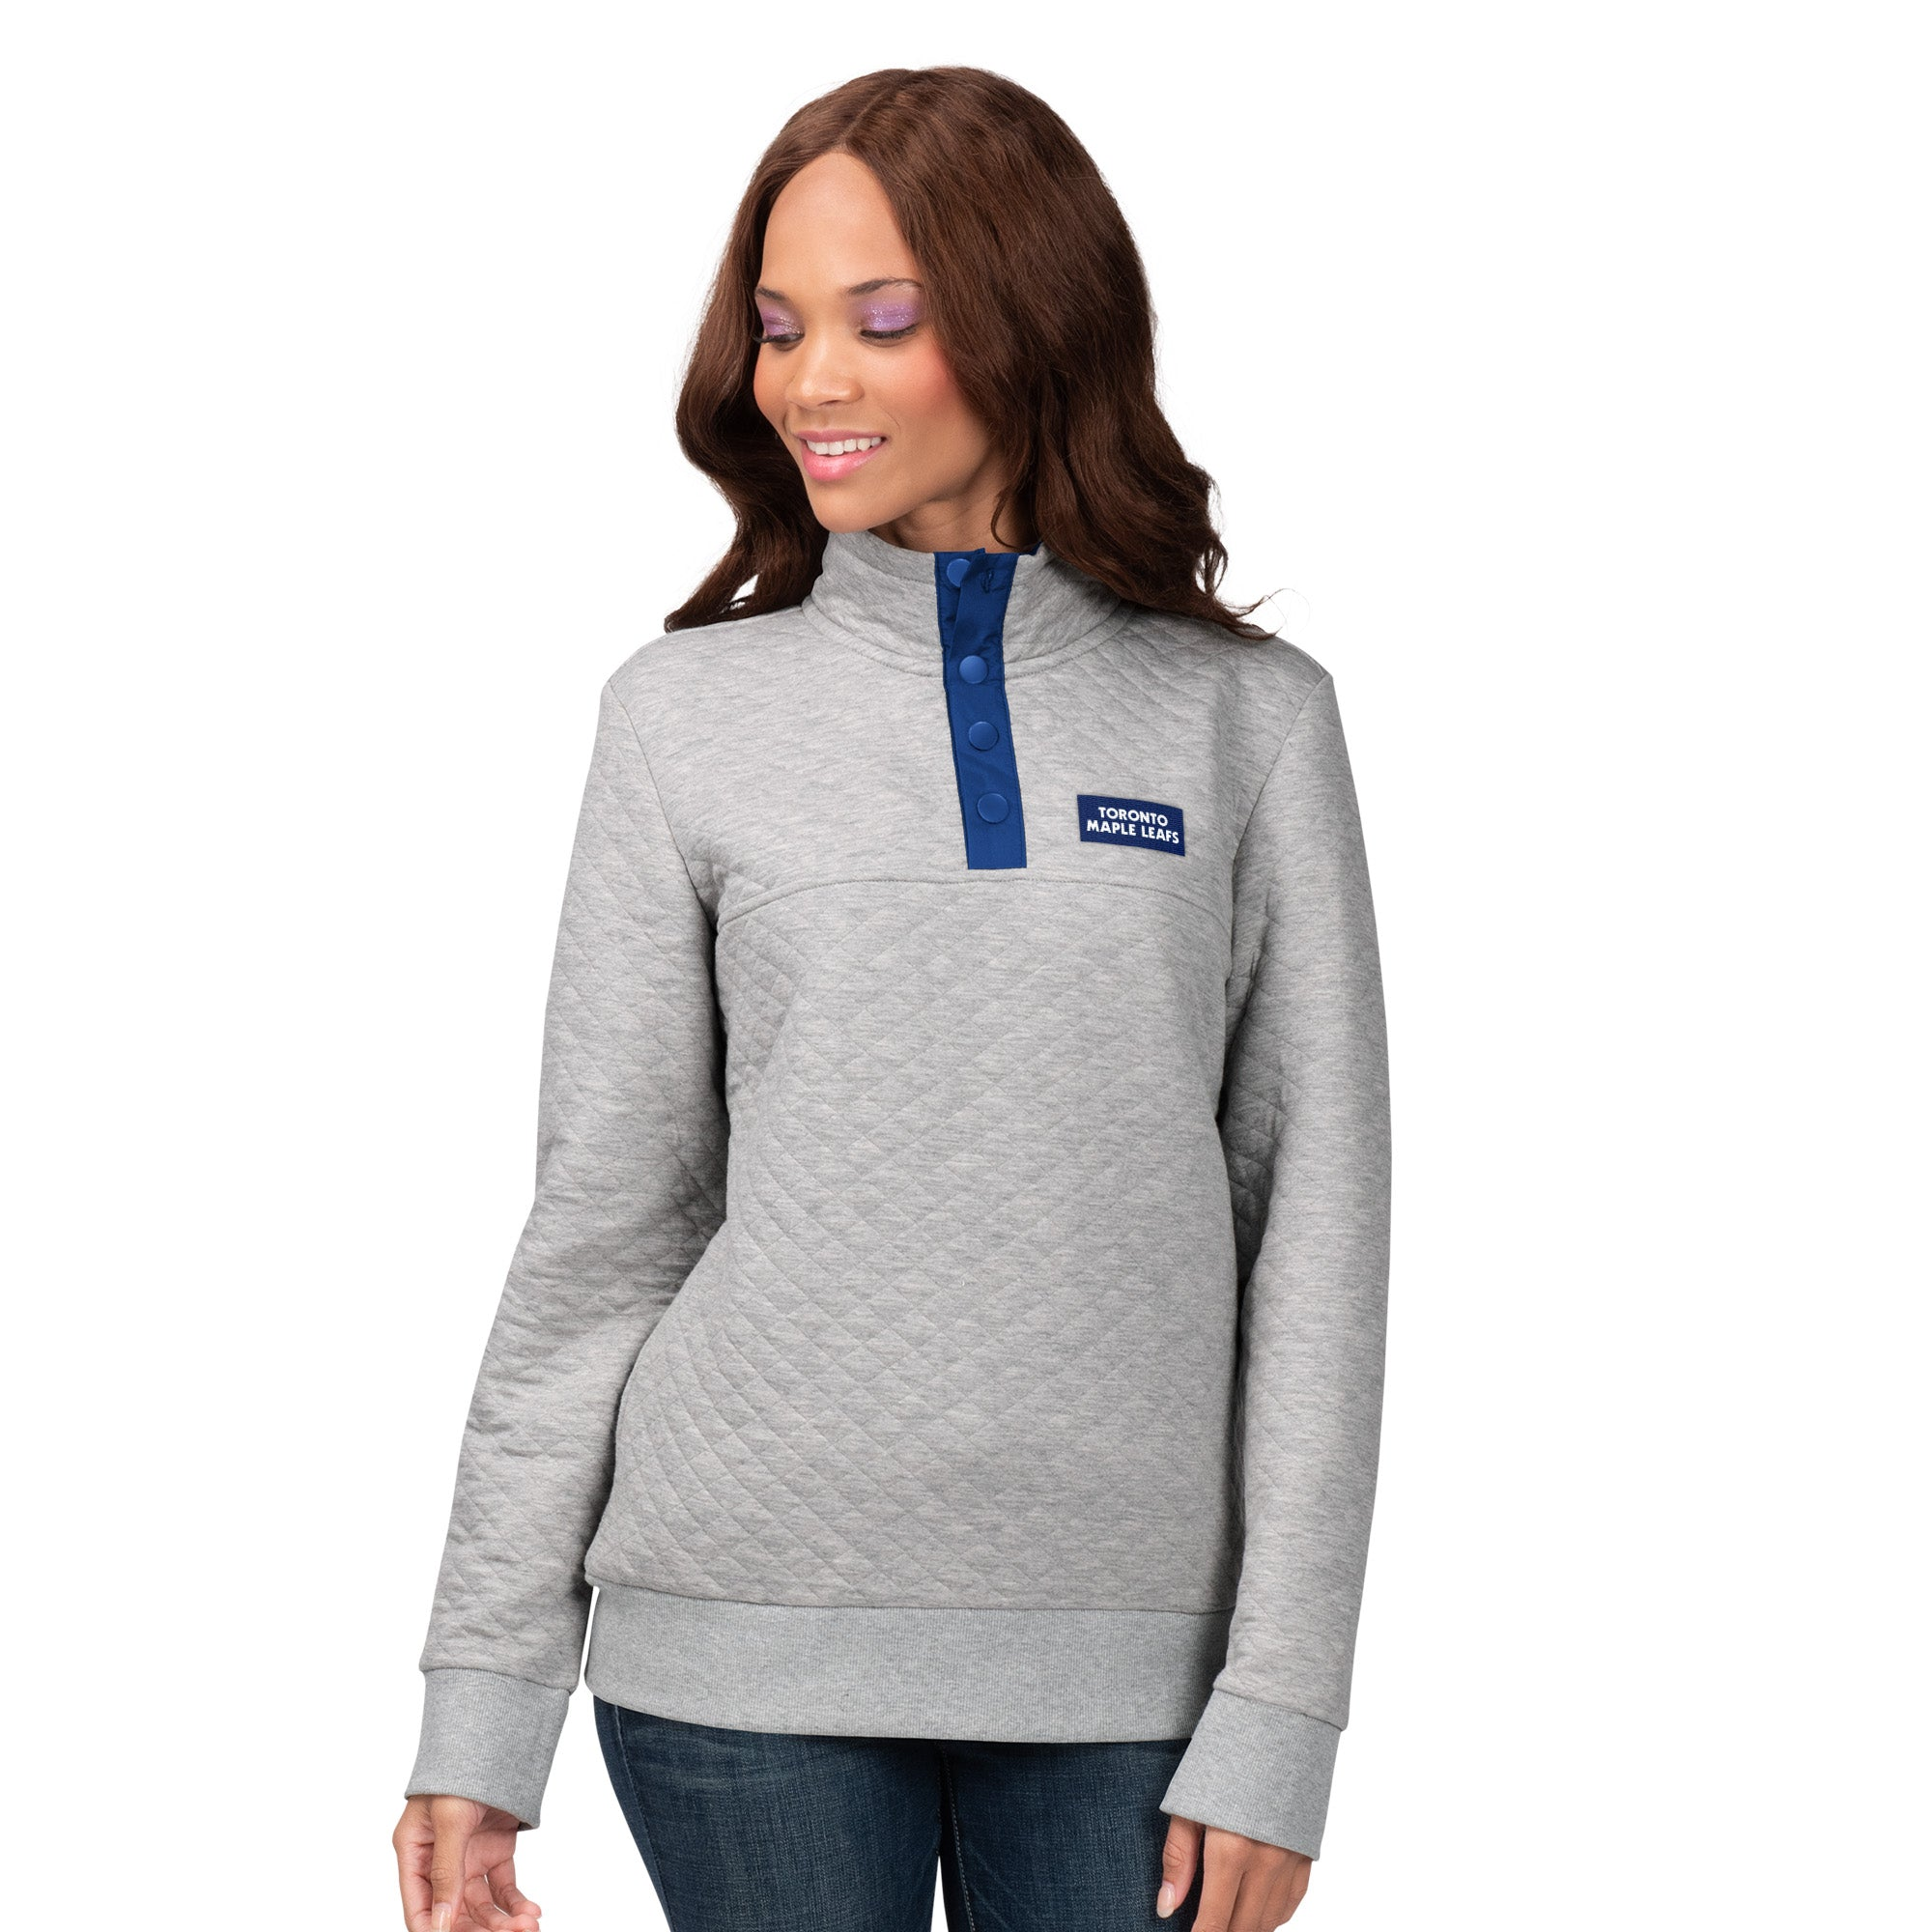 Maple Leafs GIII Ladies Quilted 1/4 Zip Sweater